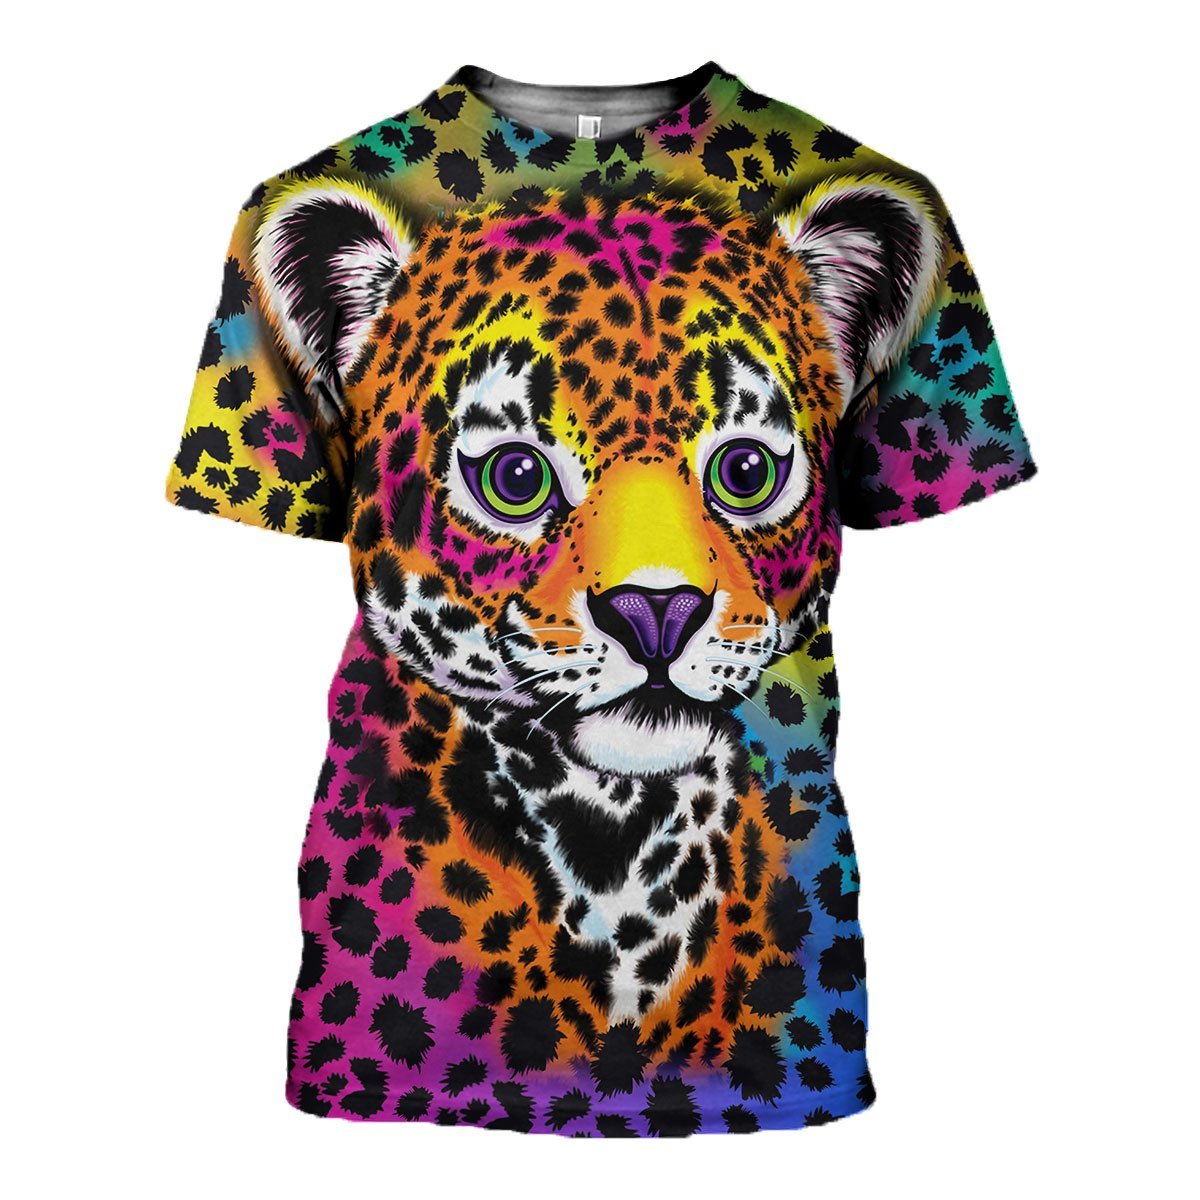 3D All Over Printed Colorful Panther  Shirts And Shorts